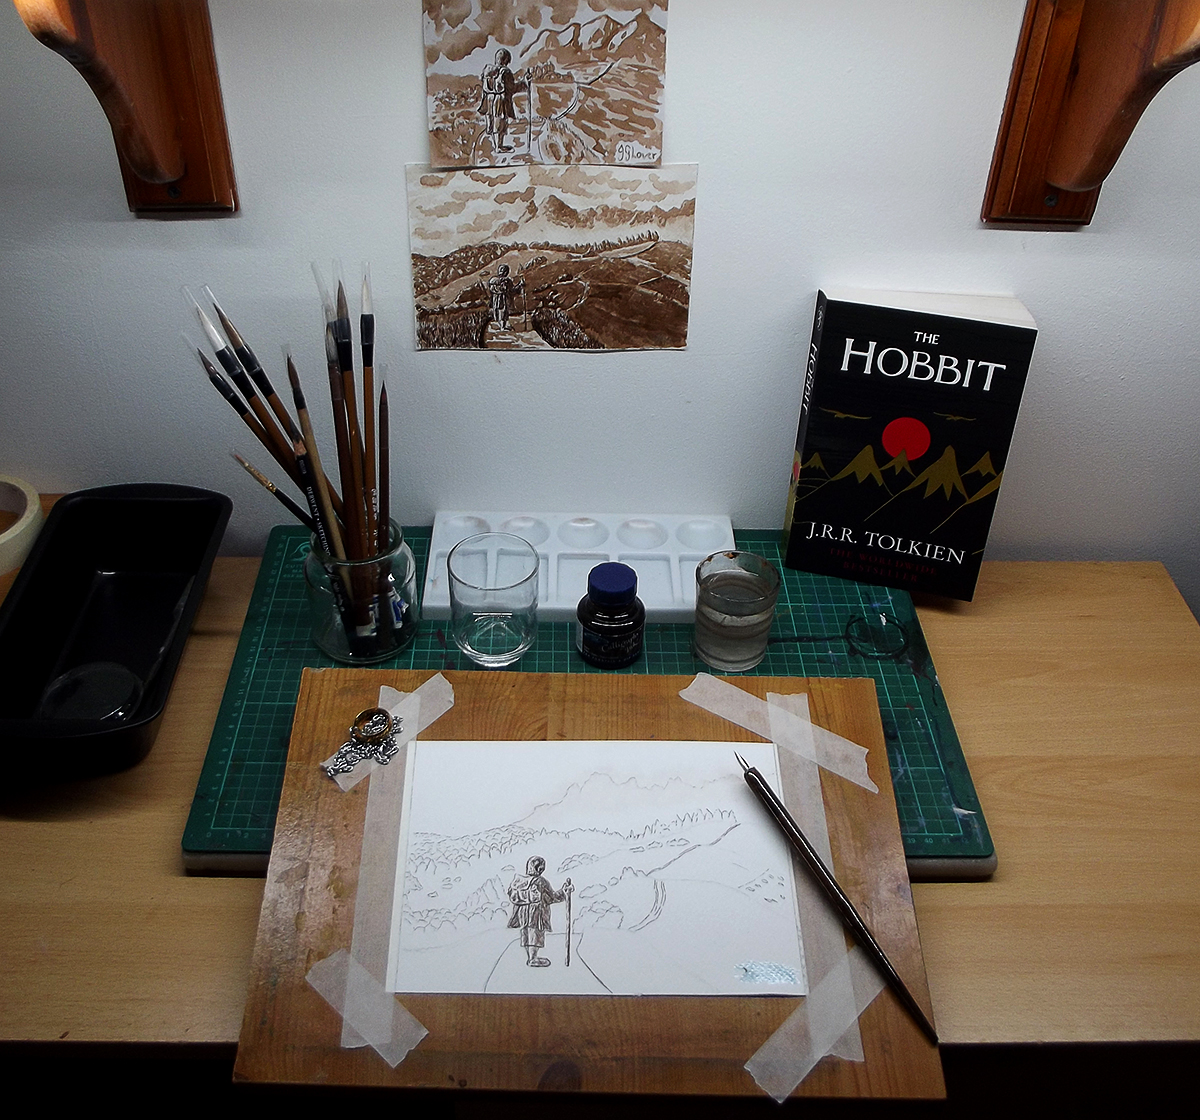 bilbo baggins ink drawing the road goes ever on jrr tolkien hobbit lotr lord of the rings silmarillion